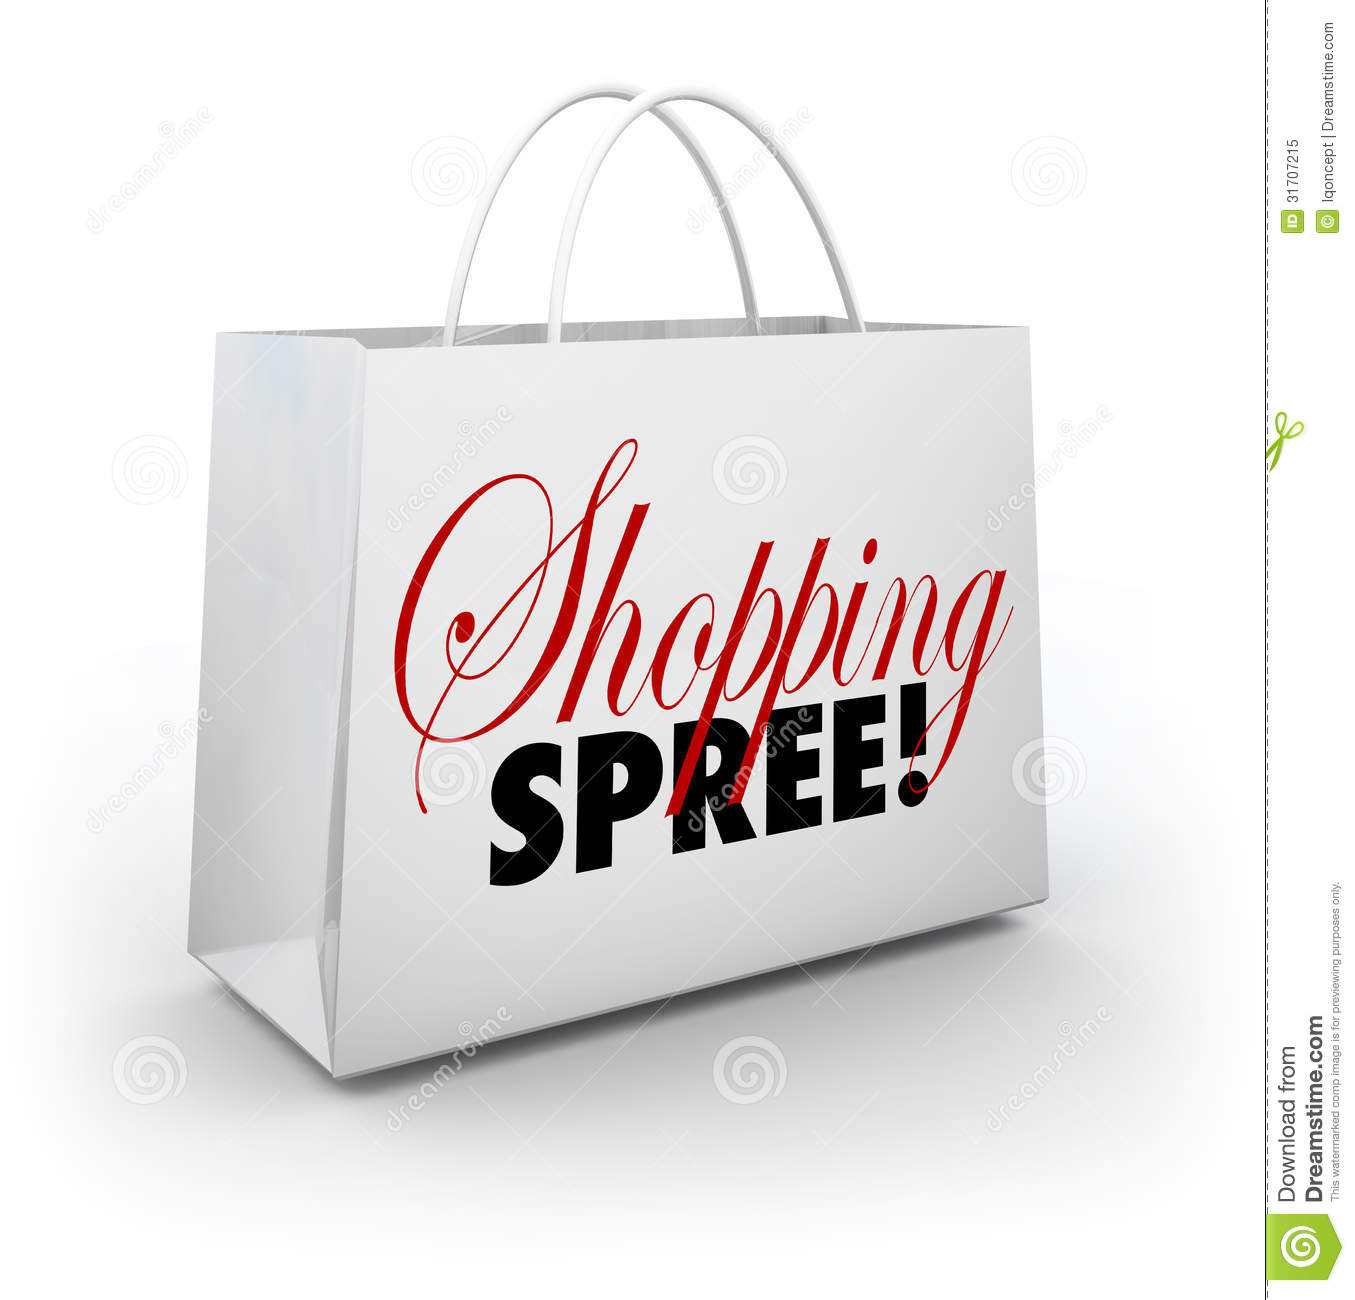 spree online shopping